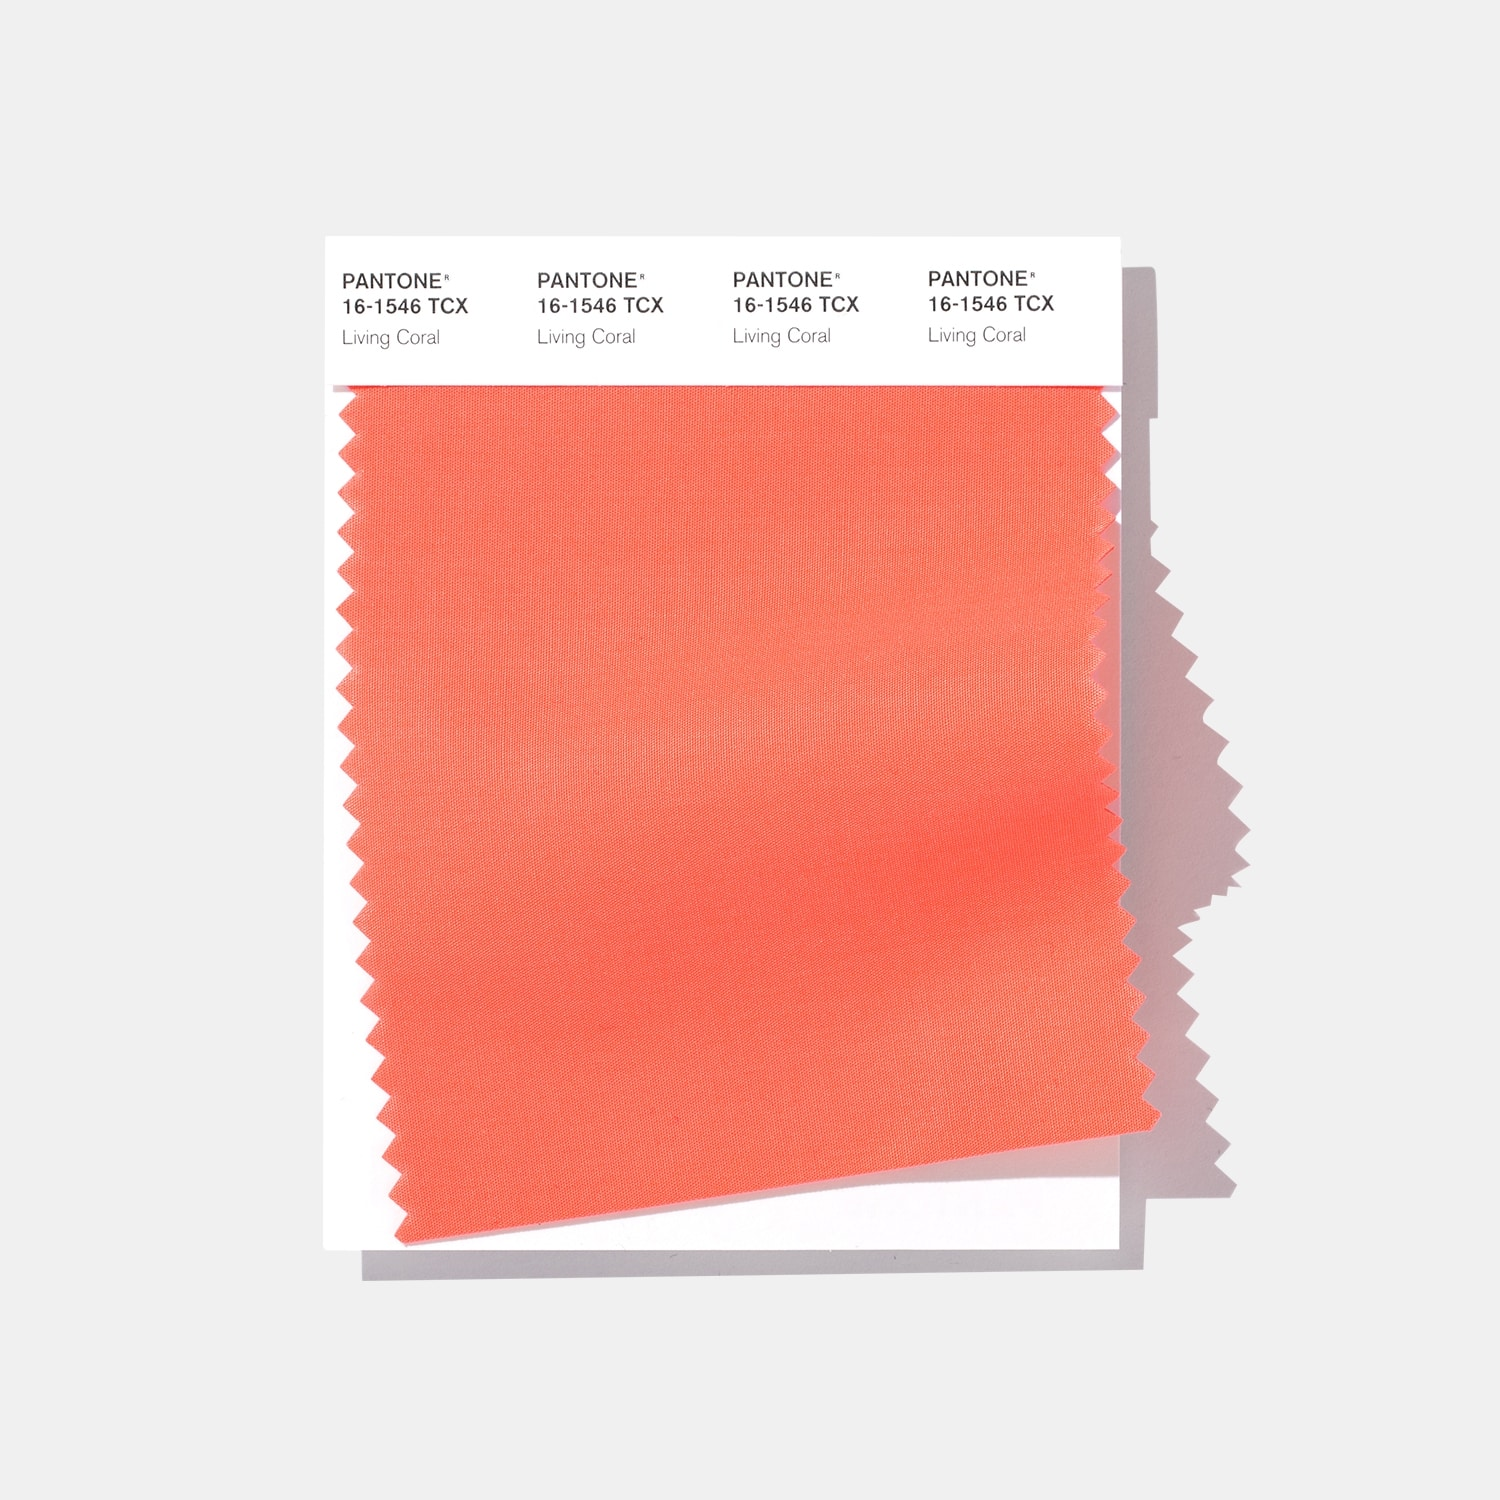 SWCD pantone fashion home interiors tcx cotton swatch color of the year 2019 living coral